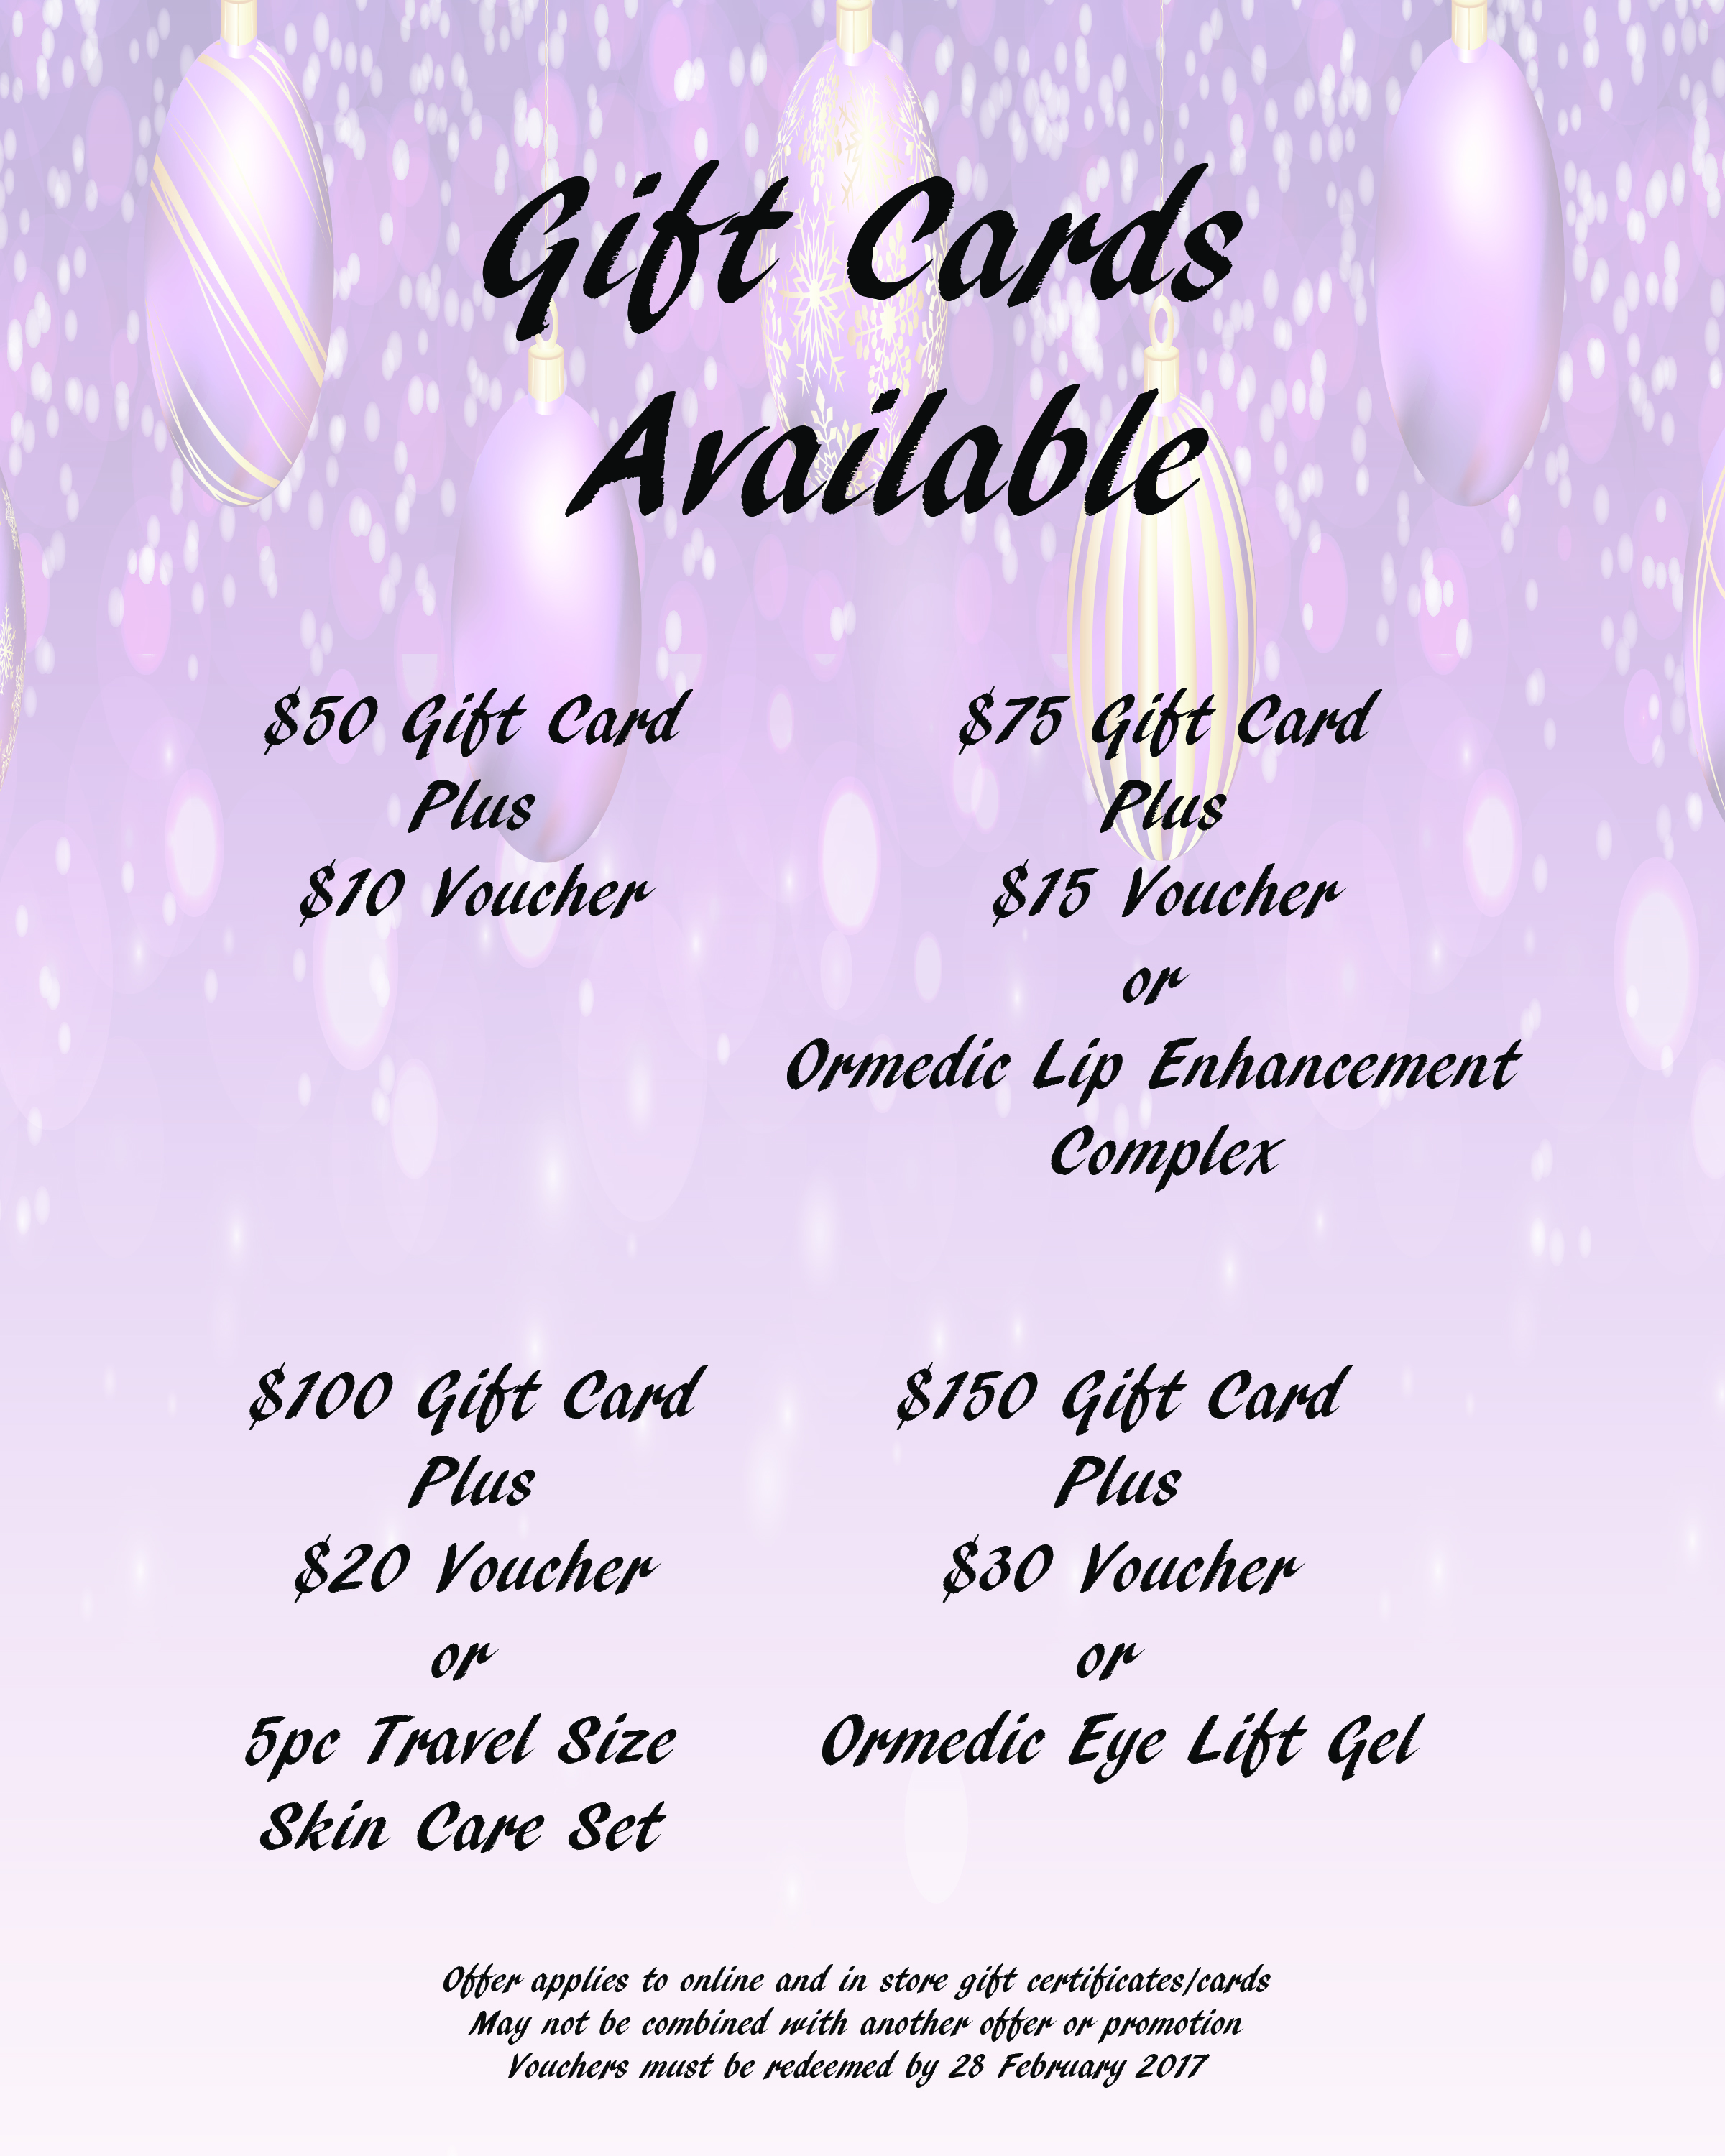 free gift with gift card purchase brow to toe waxing and skin care